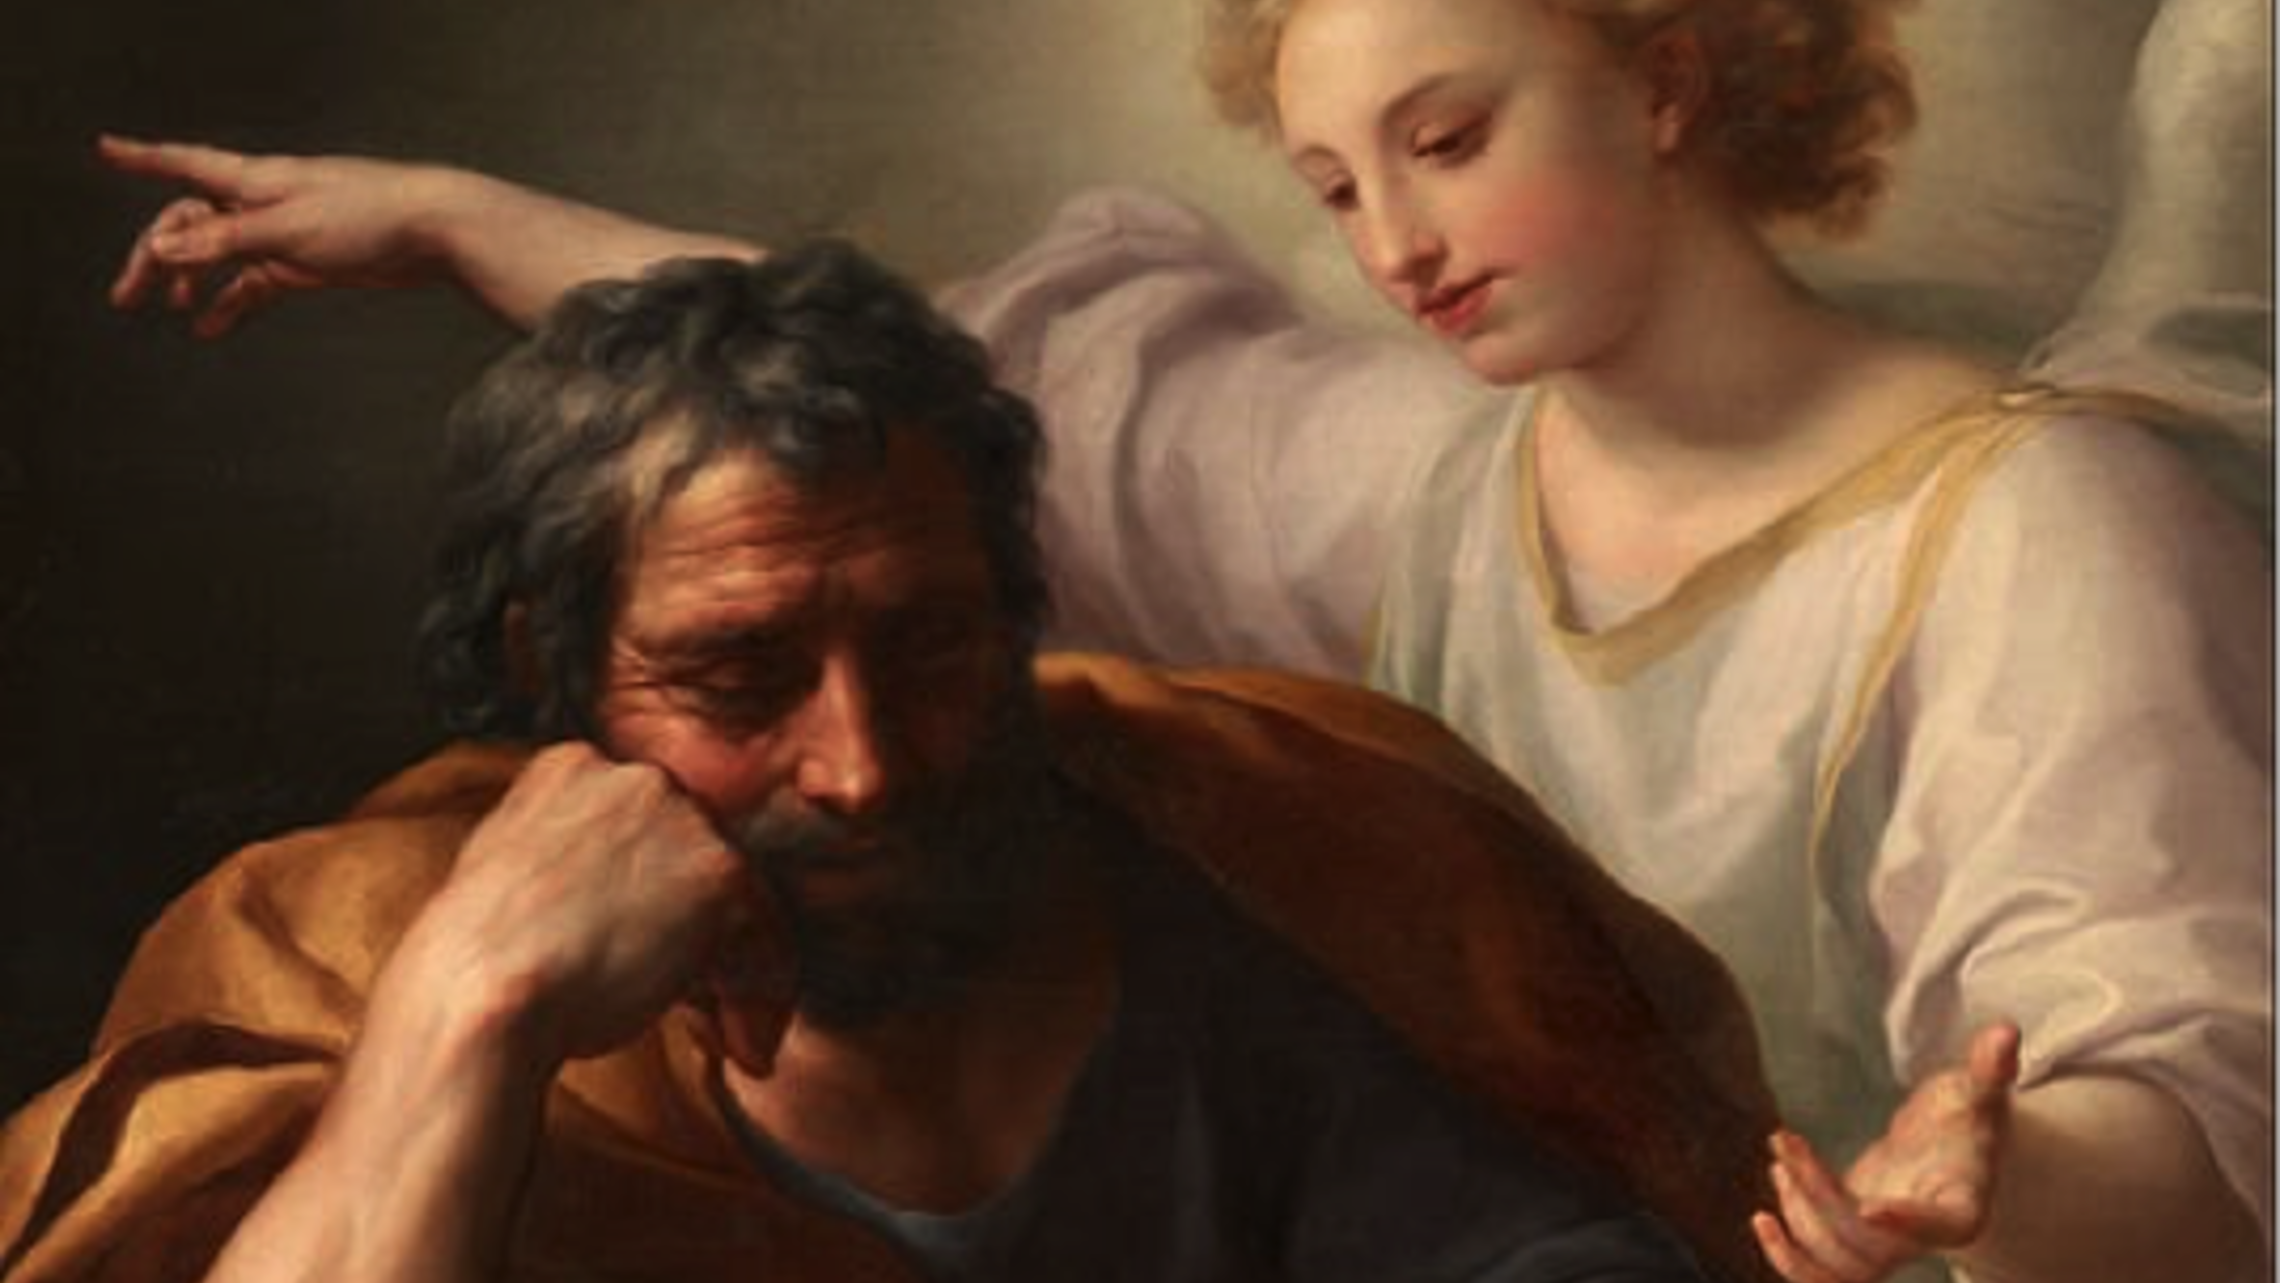 St. Joseph sits in thought with an Angel